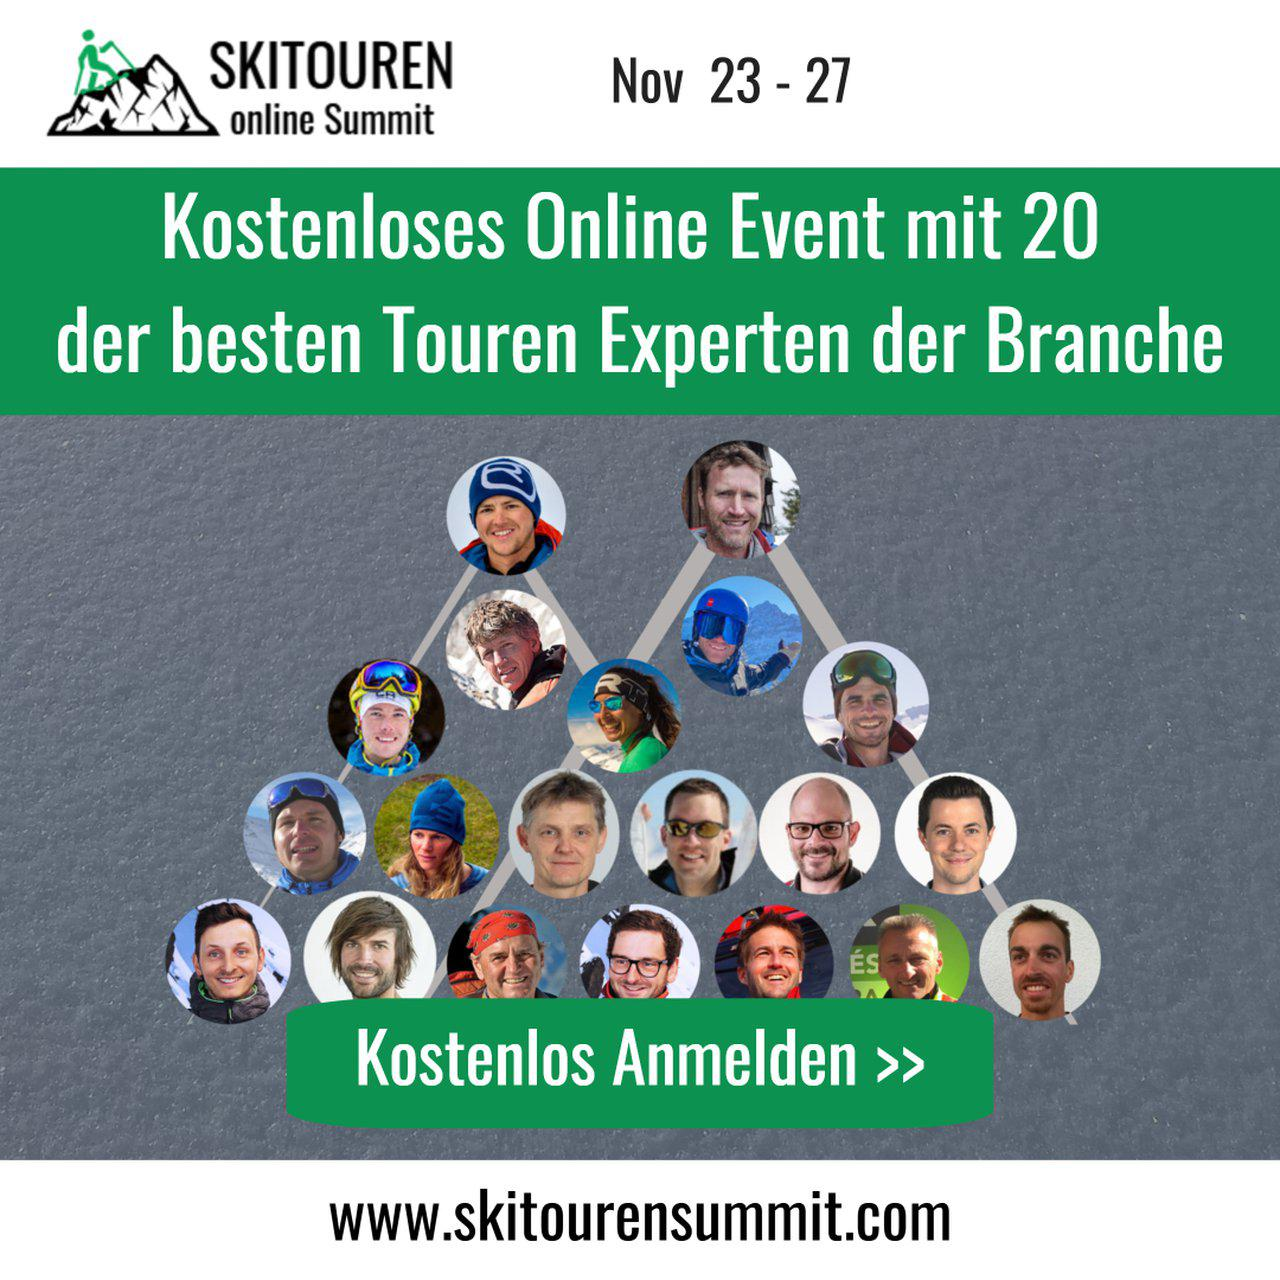 Skitouren Summit VIP-Ticket